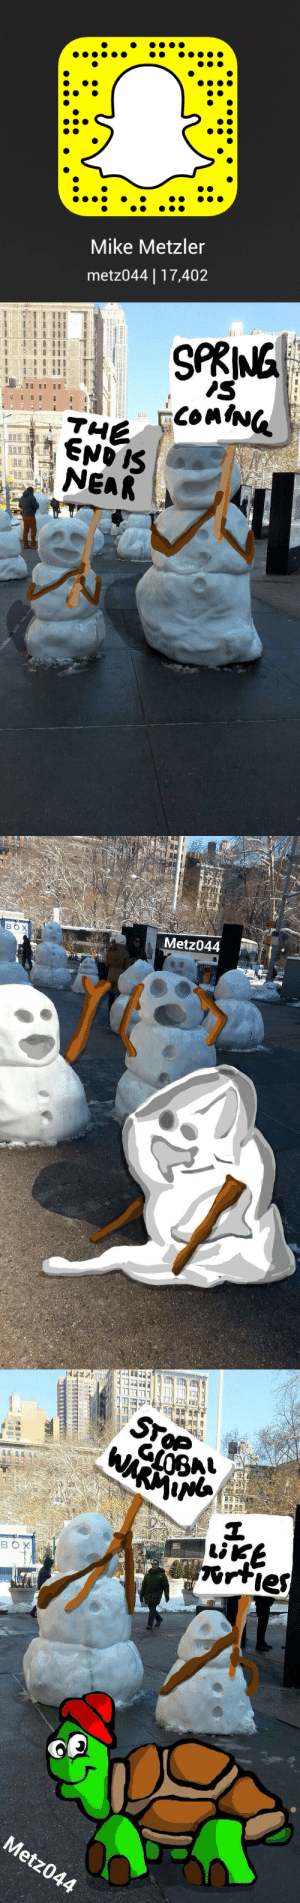 mtzler:Scan the first image in SC or add me at - metz044  This is One of my favorite snap stories I've created recently. Drawing on real life is one of my favorite things and when I can incorporate Calvin and Hobbes references… All the better.: Mike Metzler  metz044  17,402   SPRING  is  ConING  END IS  THE  NEAR  PUN   Metz044  BOX   STOP  WARM  LIKE  orties  BOX  Metz044 mtzler:Scan the first image in SC or add me at - metz044  This is One of my favorite snap stories I've created recently. Drawing on real life is one of my favorite things and when I can incorporate Calvin and Hobbes references… All the better.